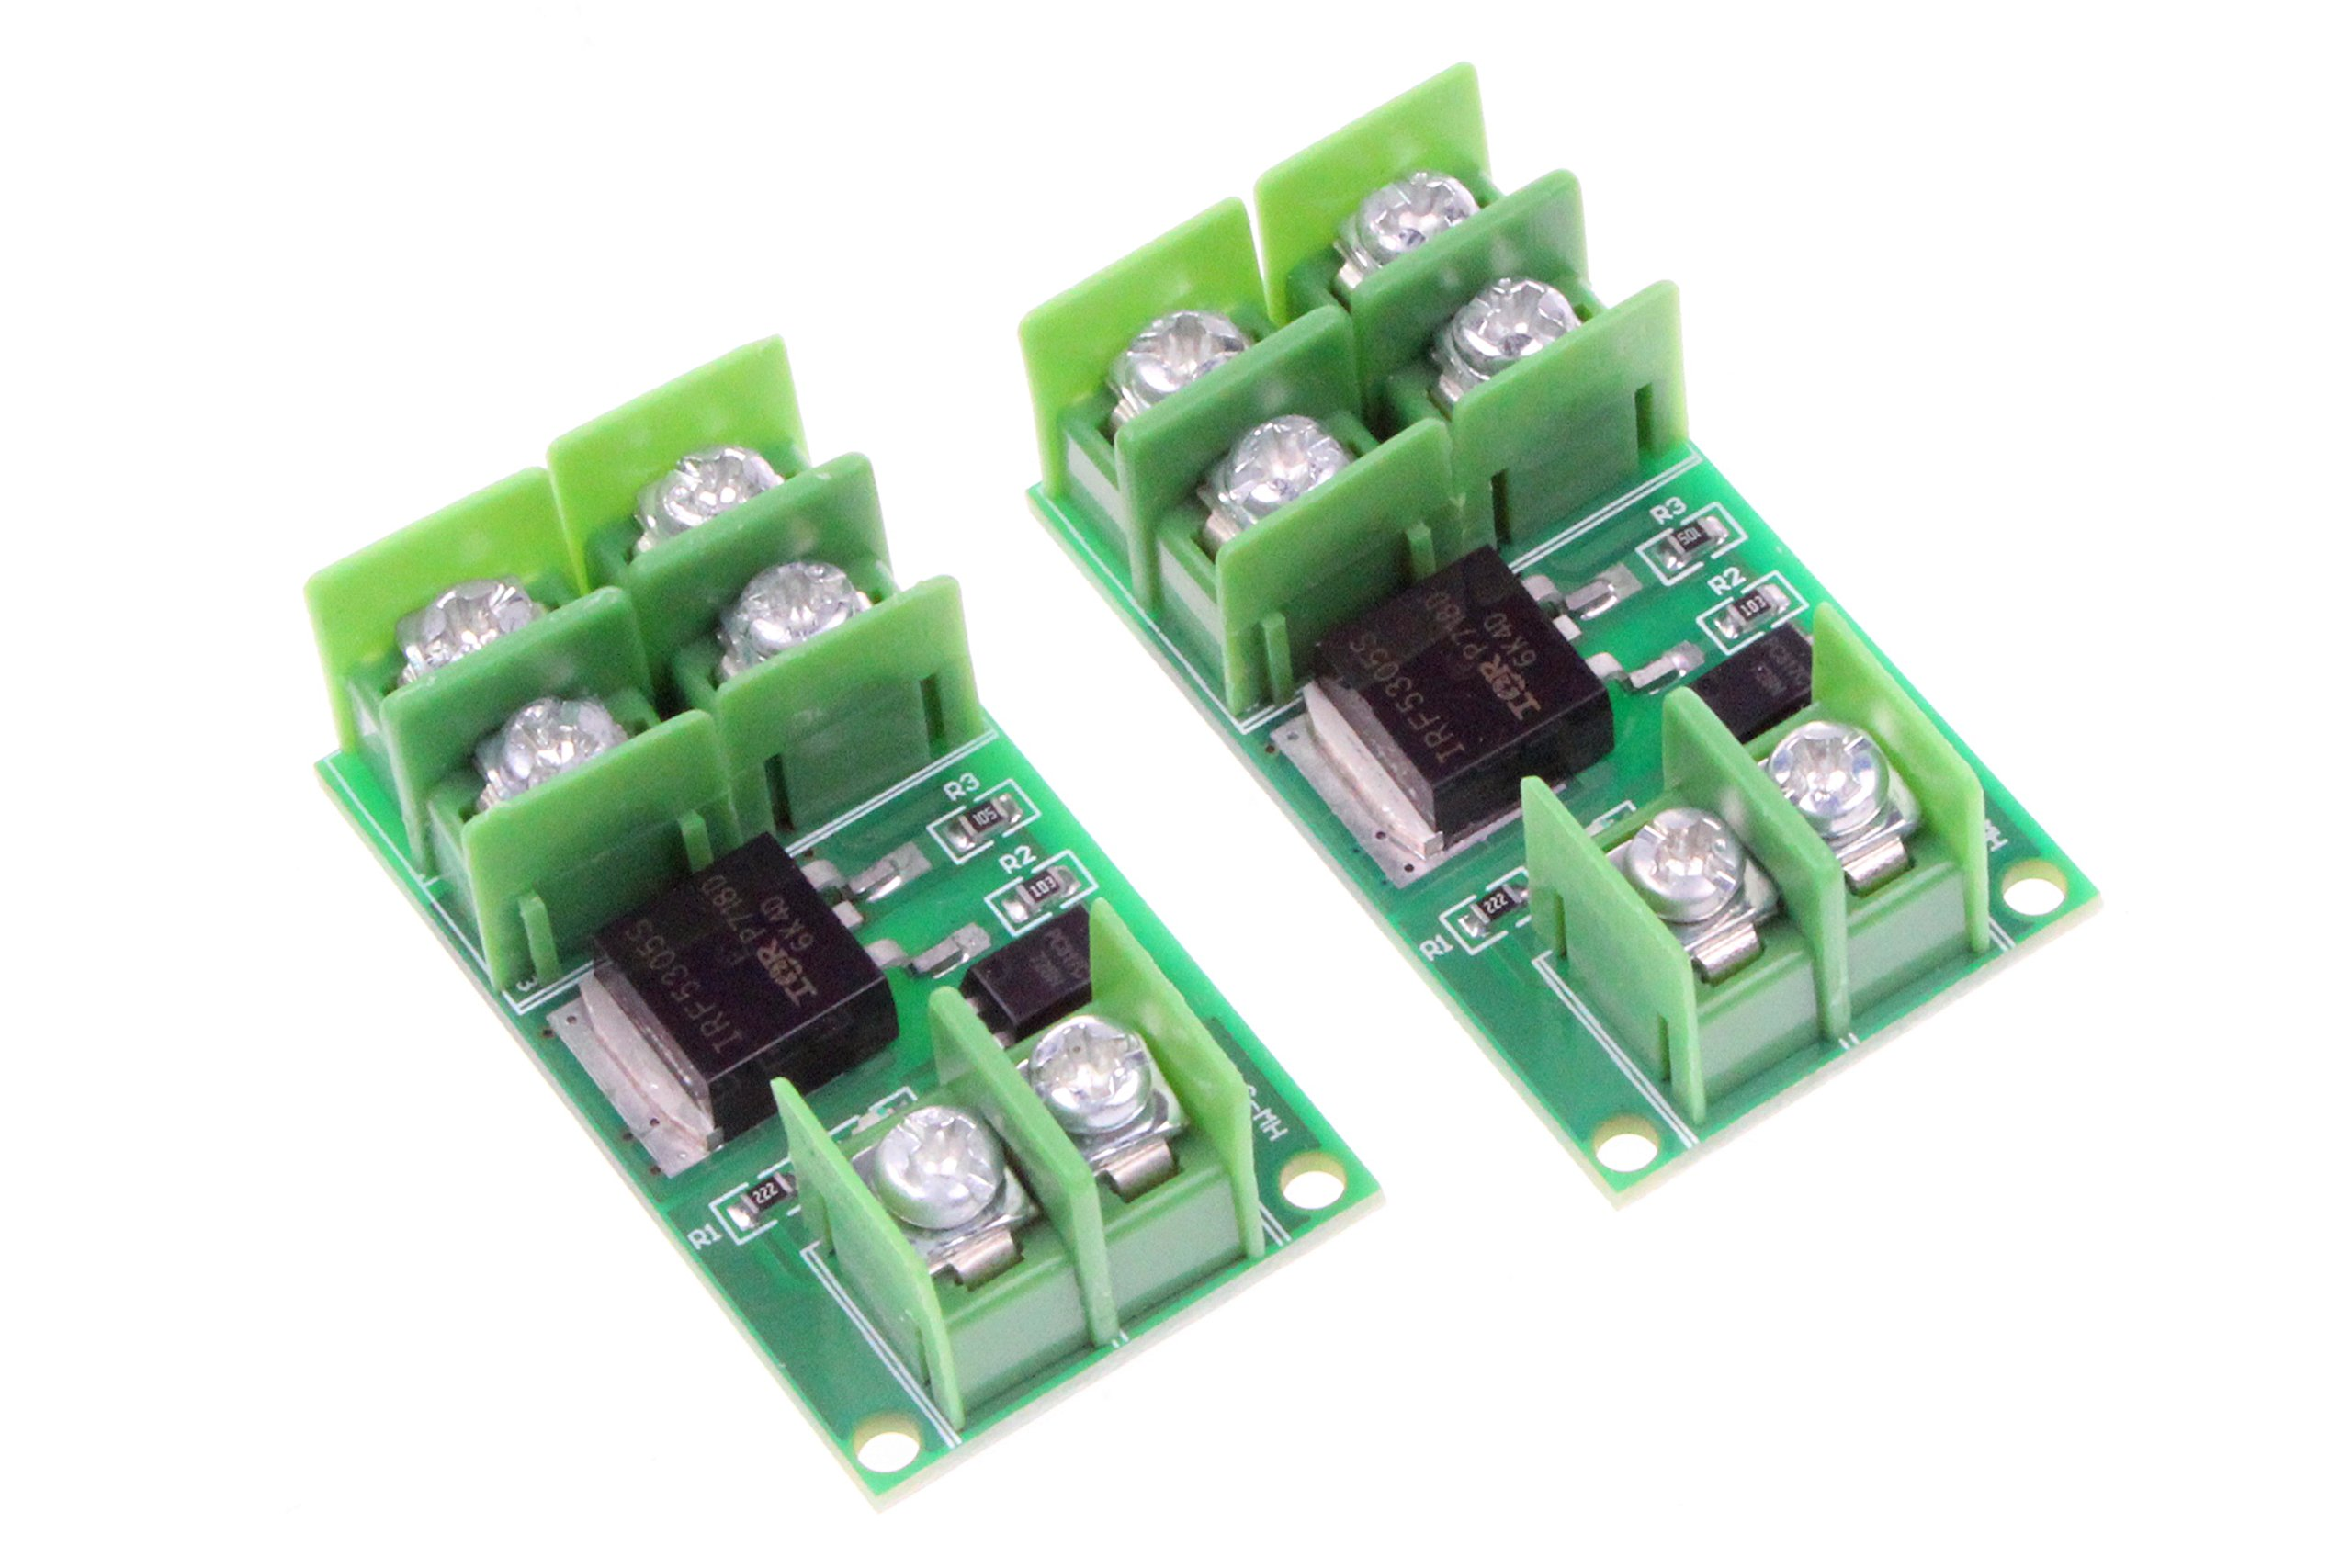 Electronic Switch Control Board Isolation MOS FET Pulse Trigger Switch Control Module DC Control -DC 5-36V Input Controlled voltage - 2Pcs